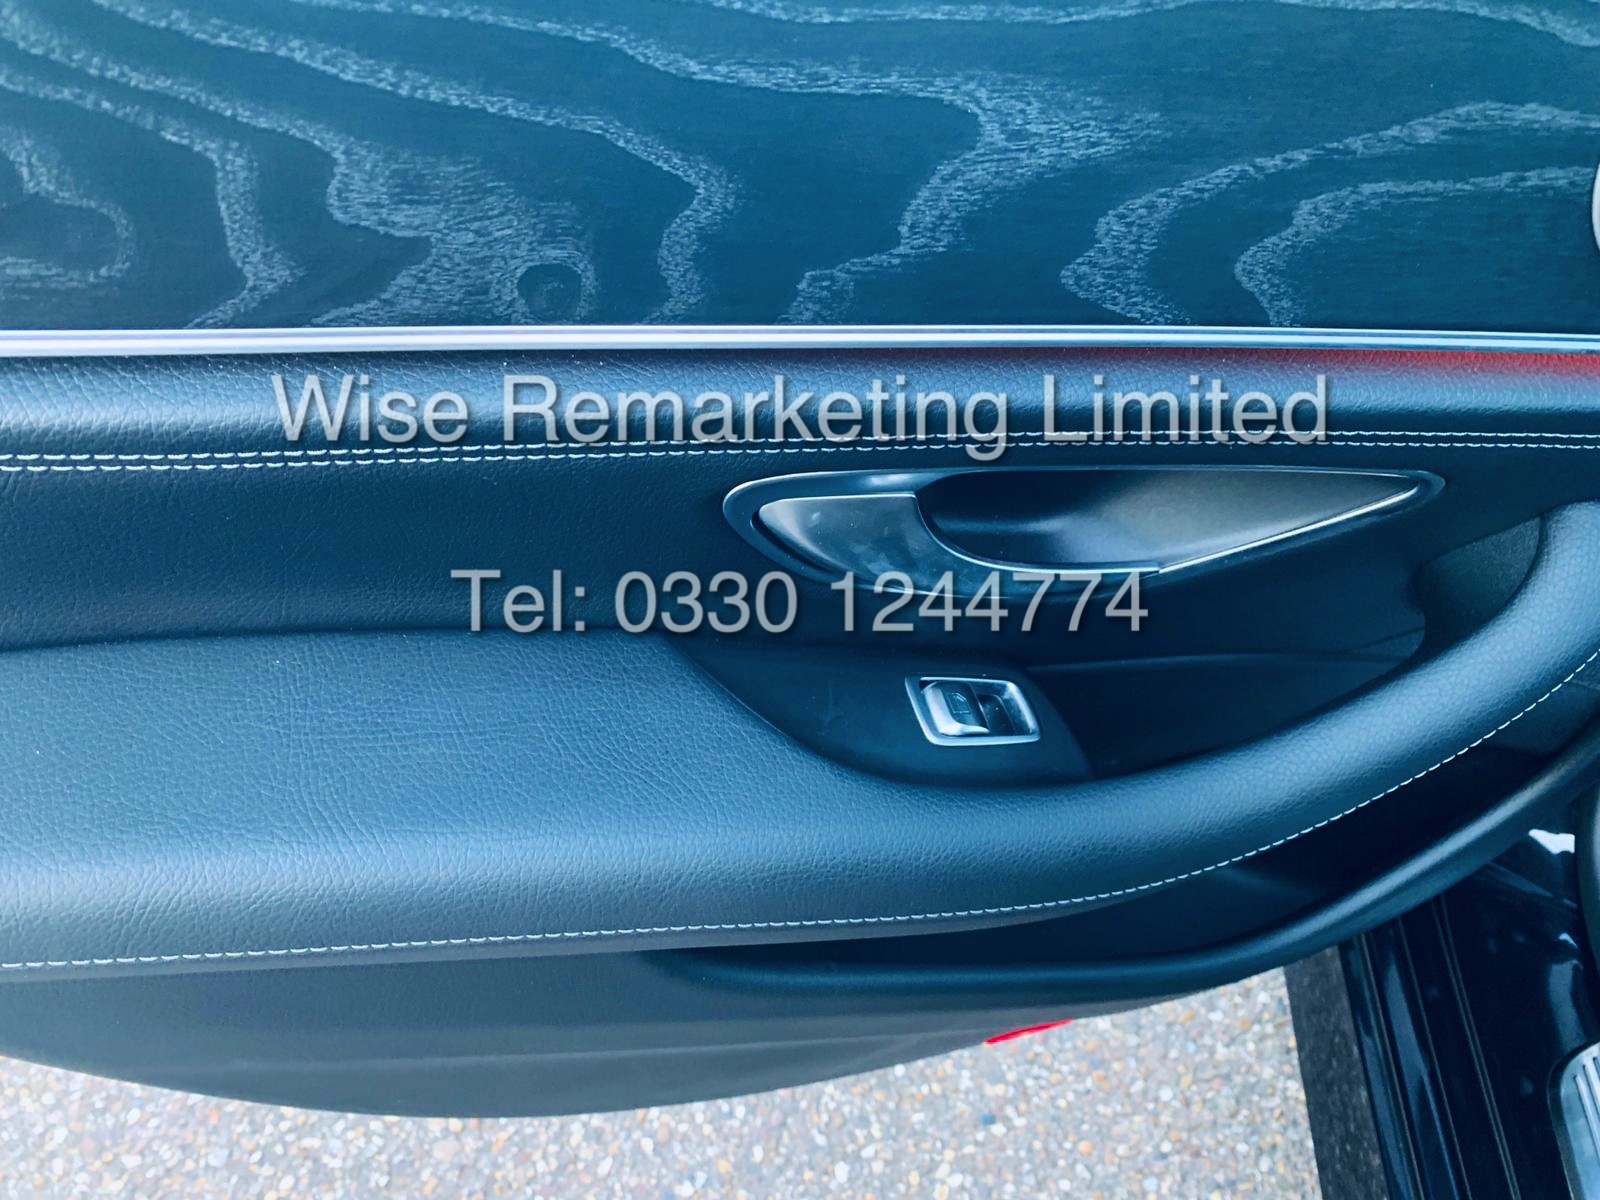 MERCEDES E CLASS ESTATE E220D AMG LINE 2017 / 9G -TRONIC / *LOW MILES* / 1 OWNER - Image 21 of 42